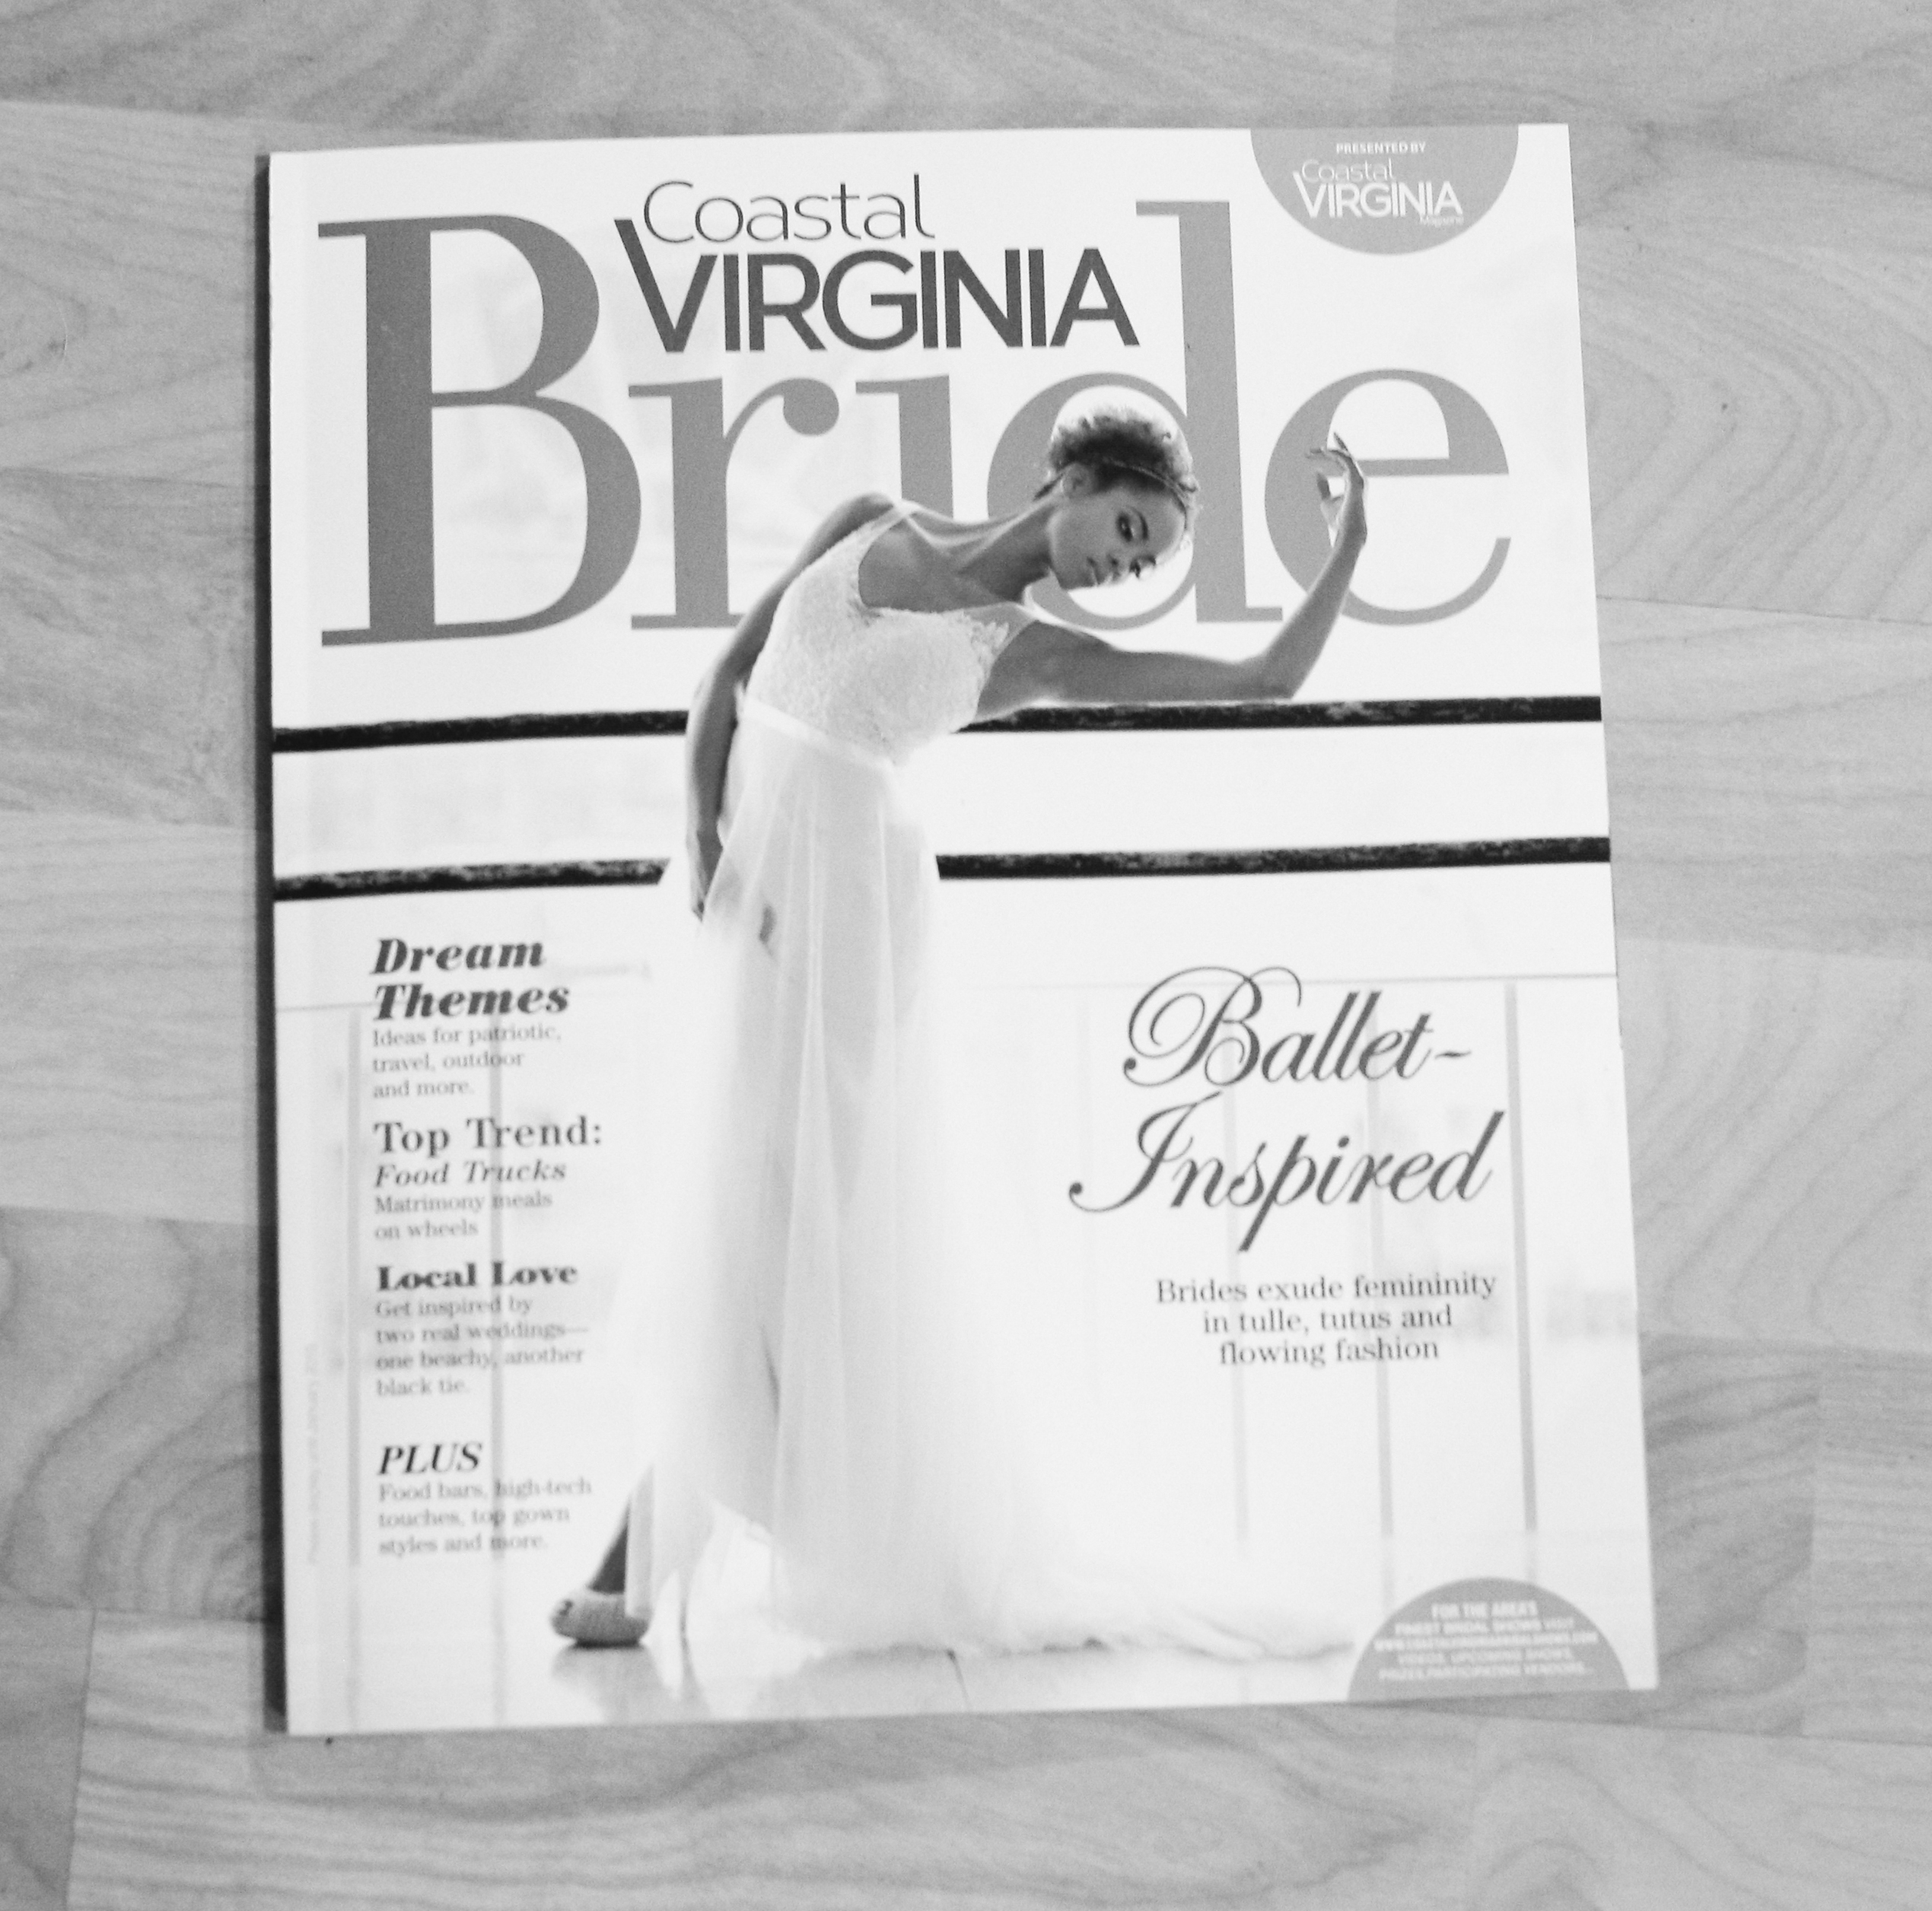 Cephus Photographs The Jan 2015 Cover of Coastal Virginia Bride Magazine!